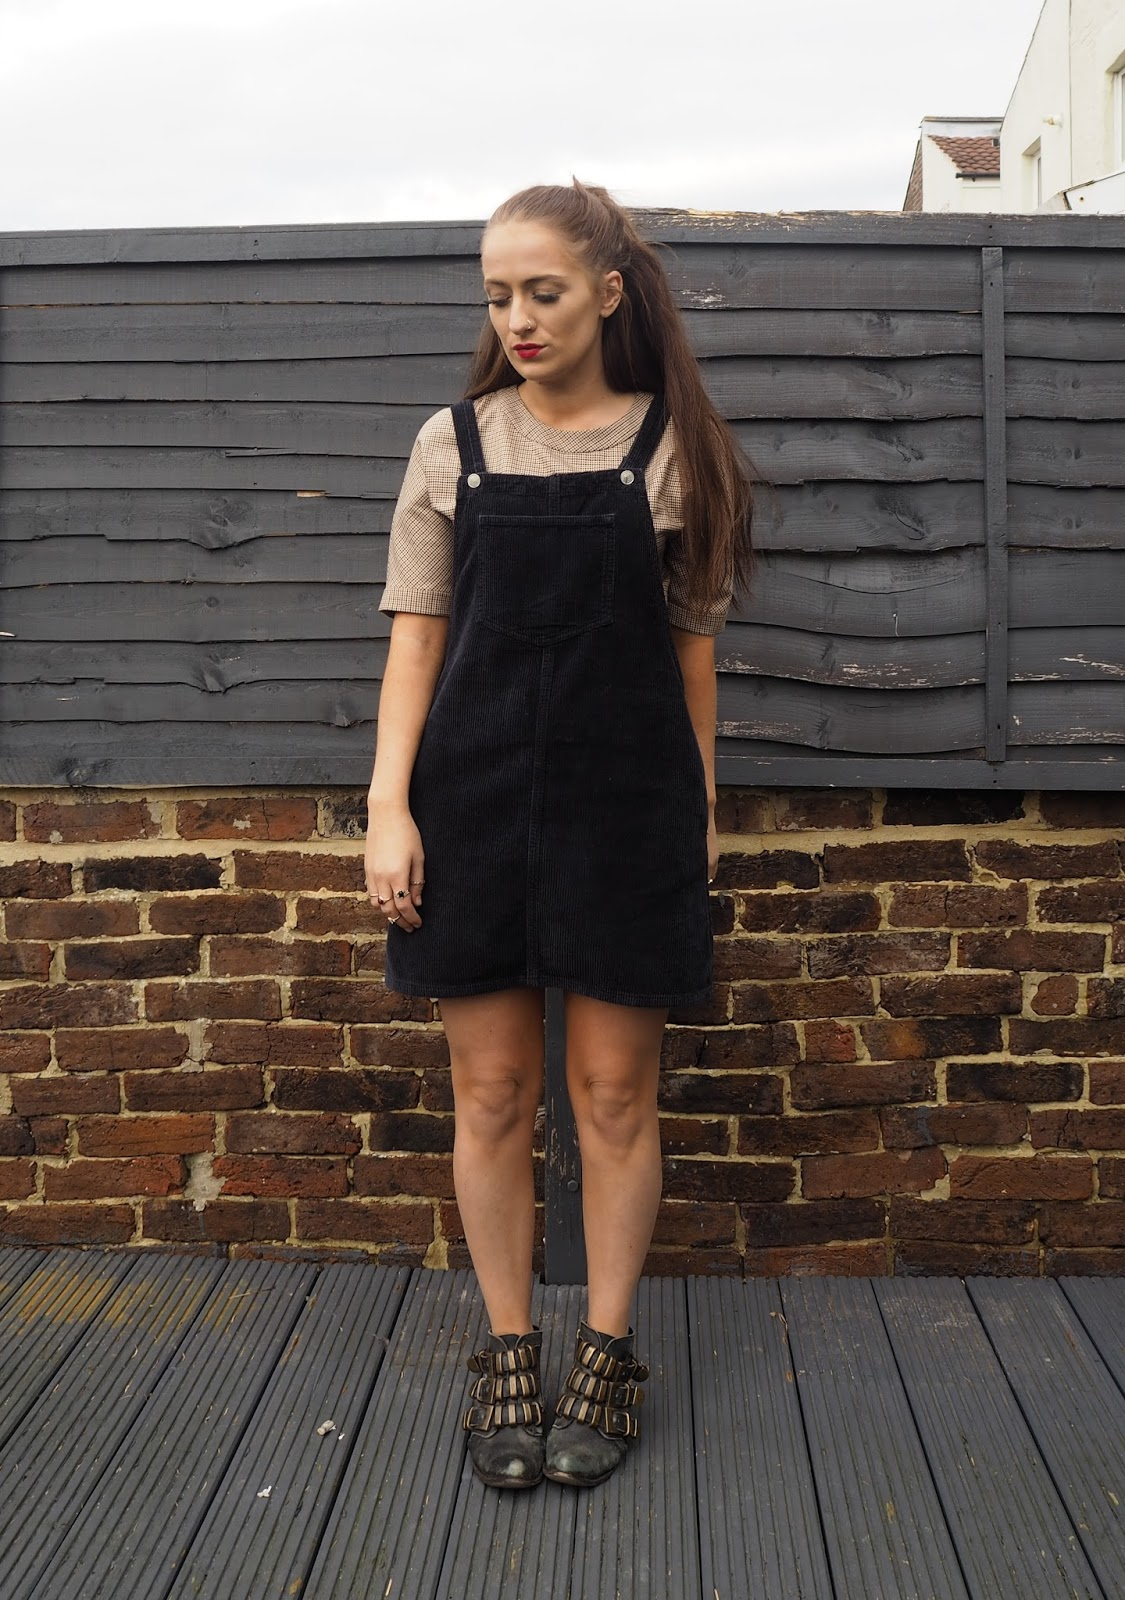 Zara Top and Topshop cord pinafore